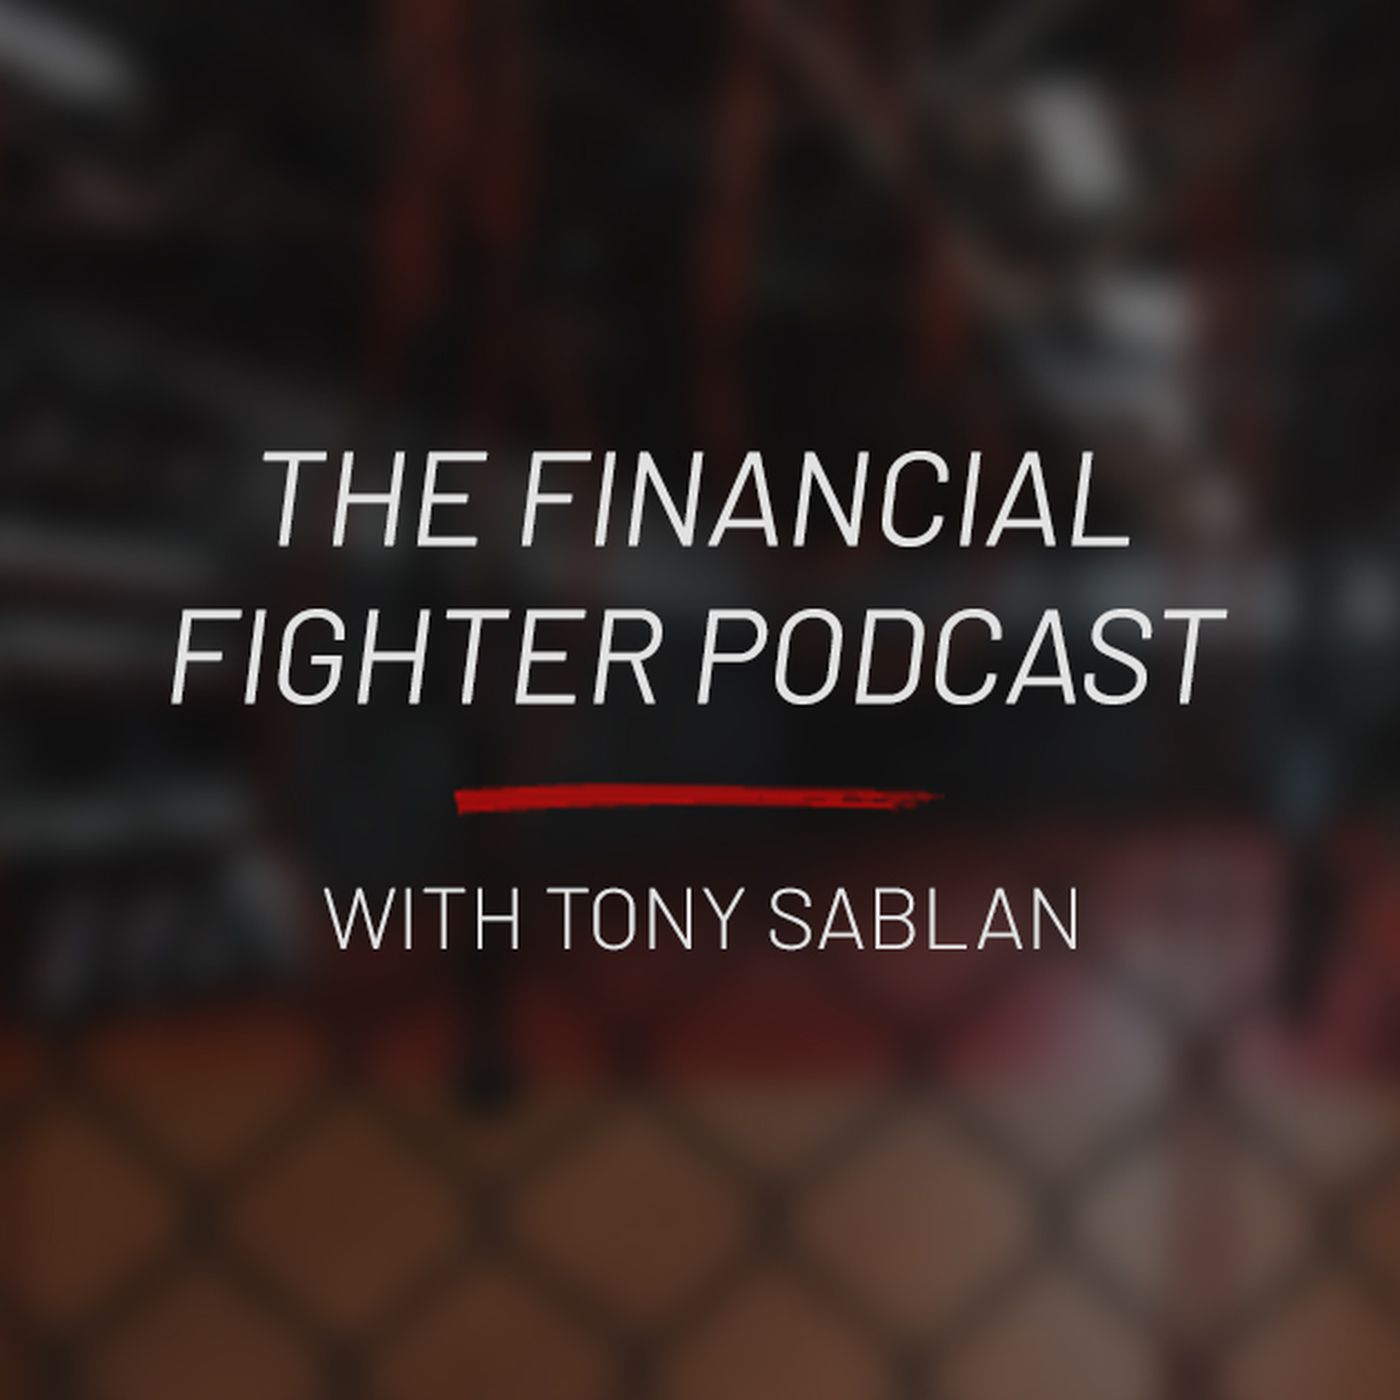 The Financial Fighter Podcast with Tony Sablan